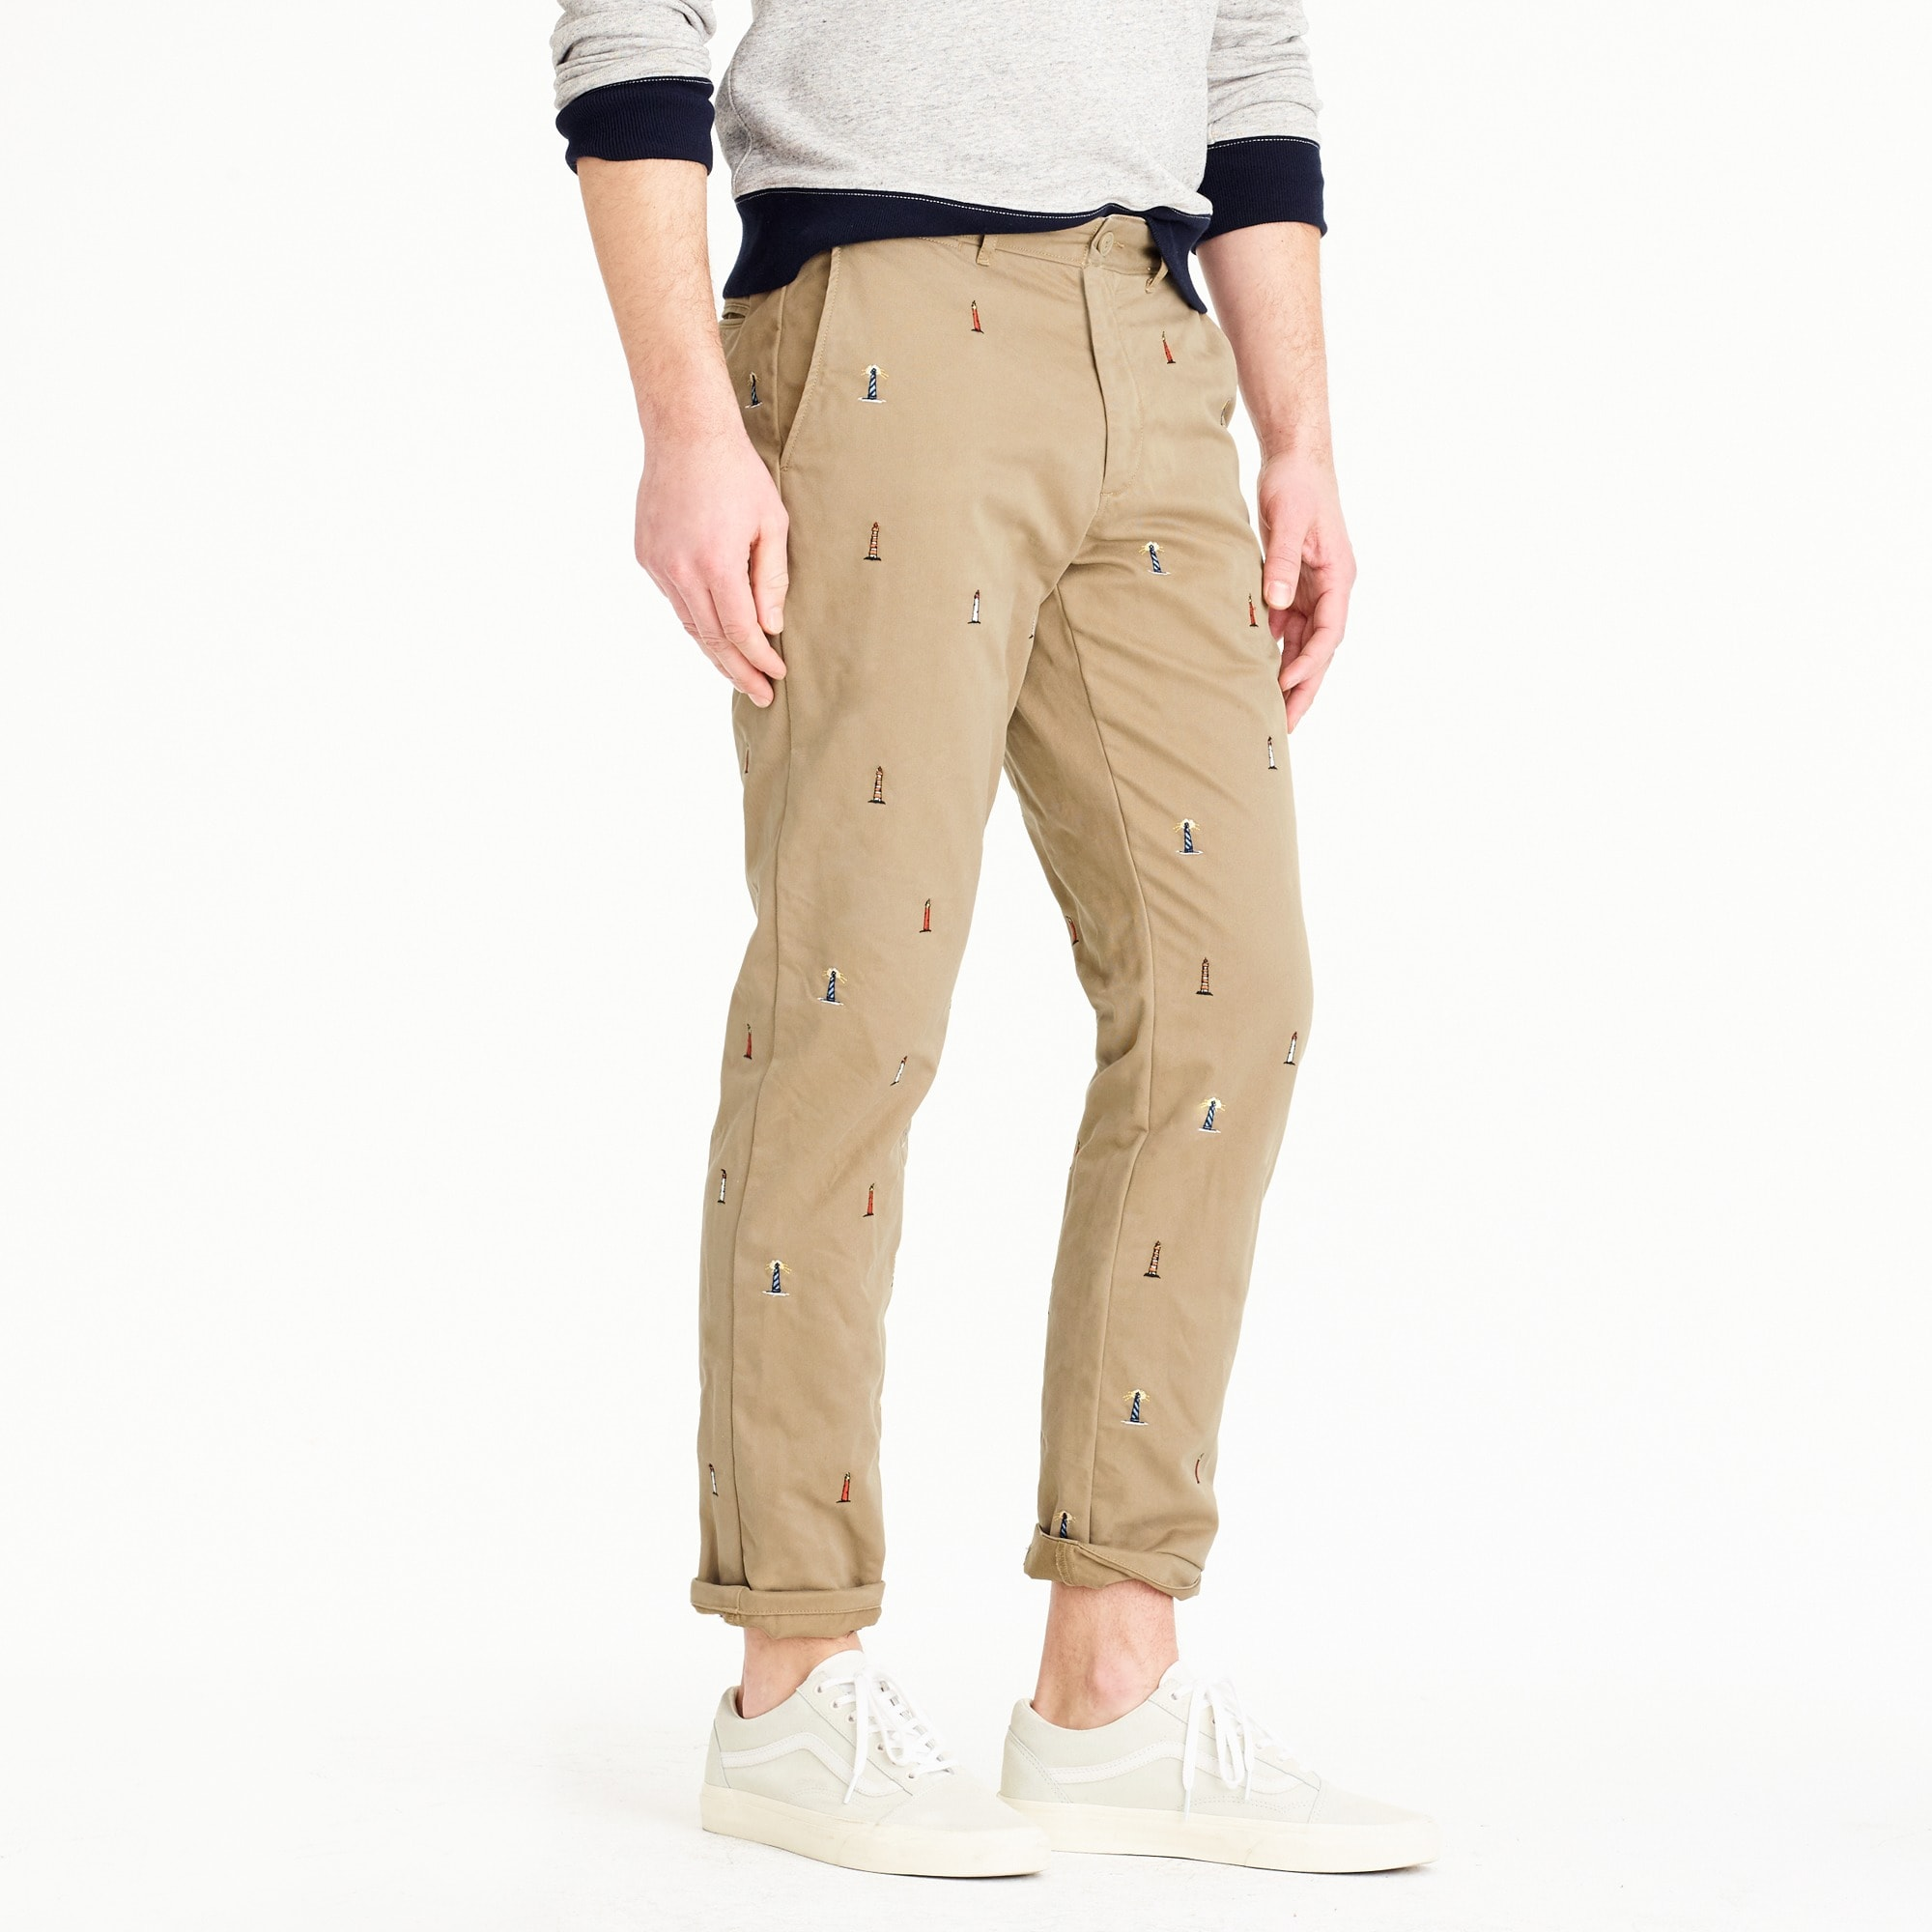 770 straight fit chino with embroidered lighthouses